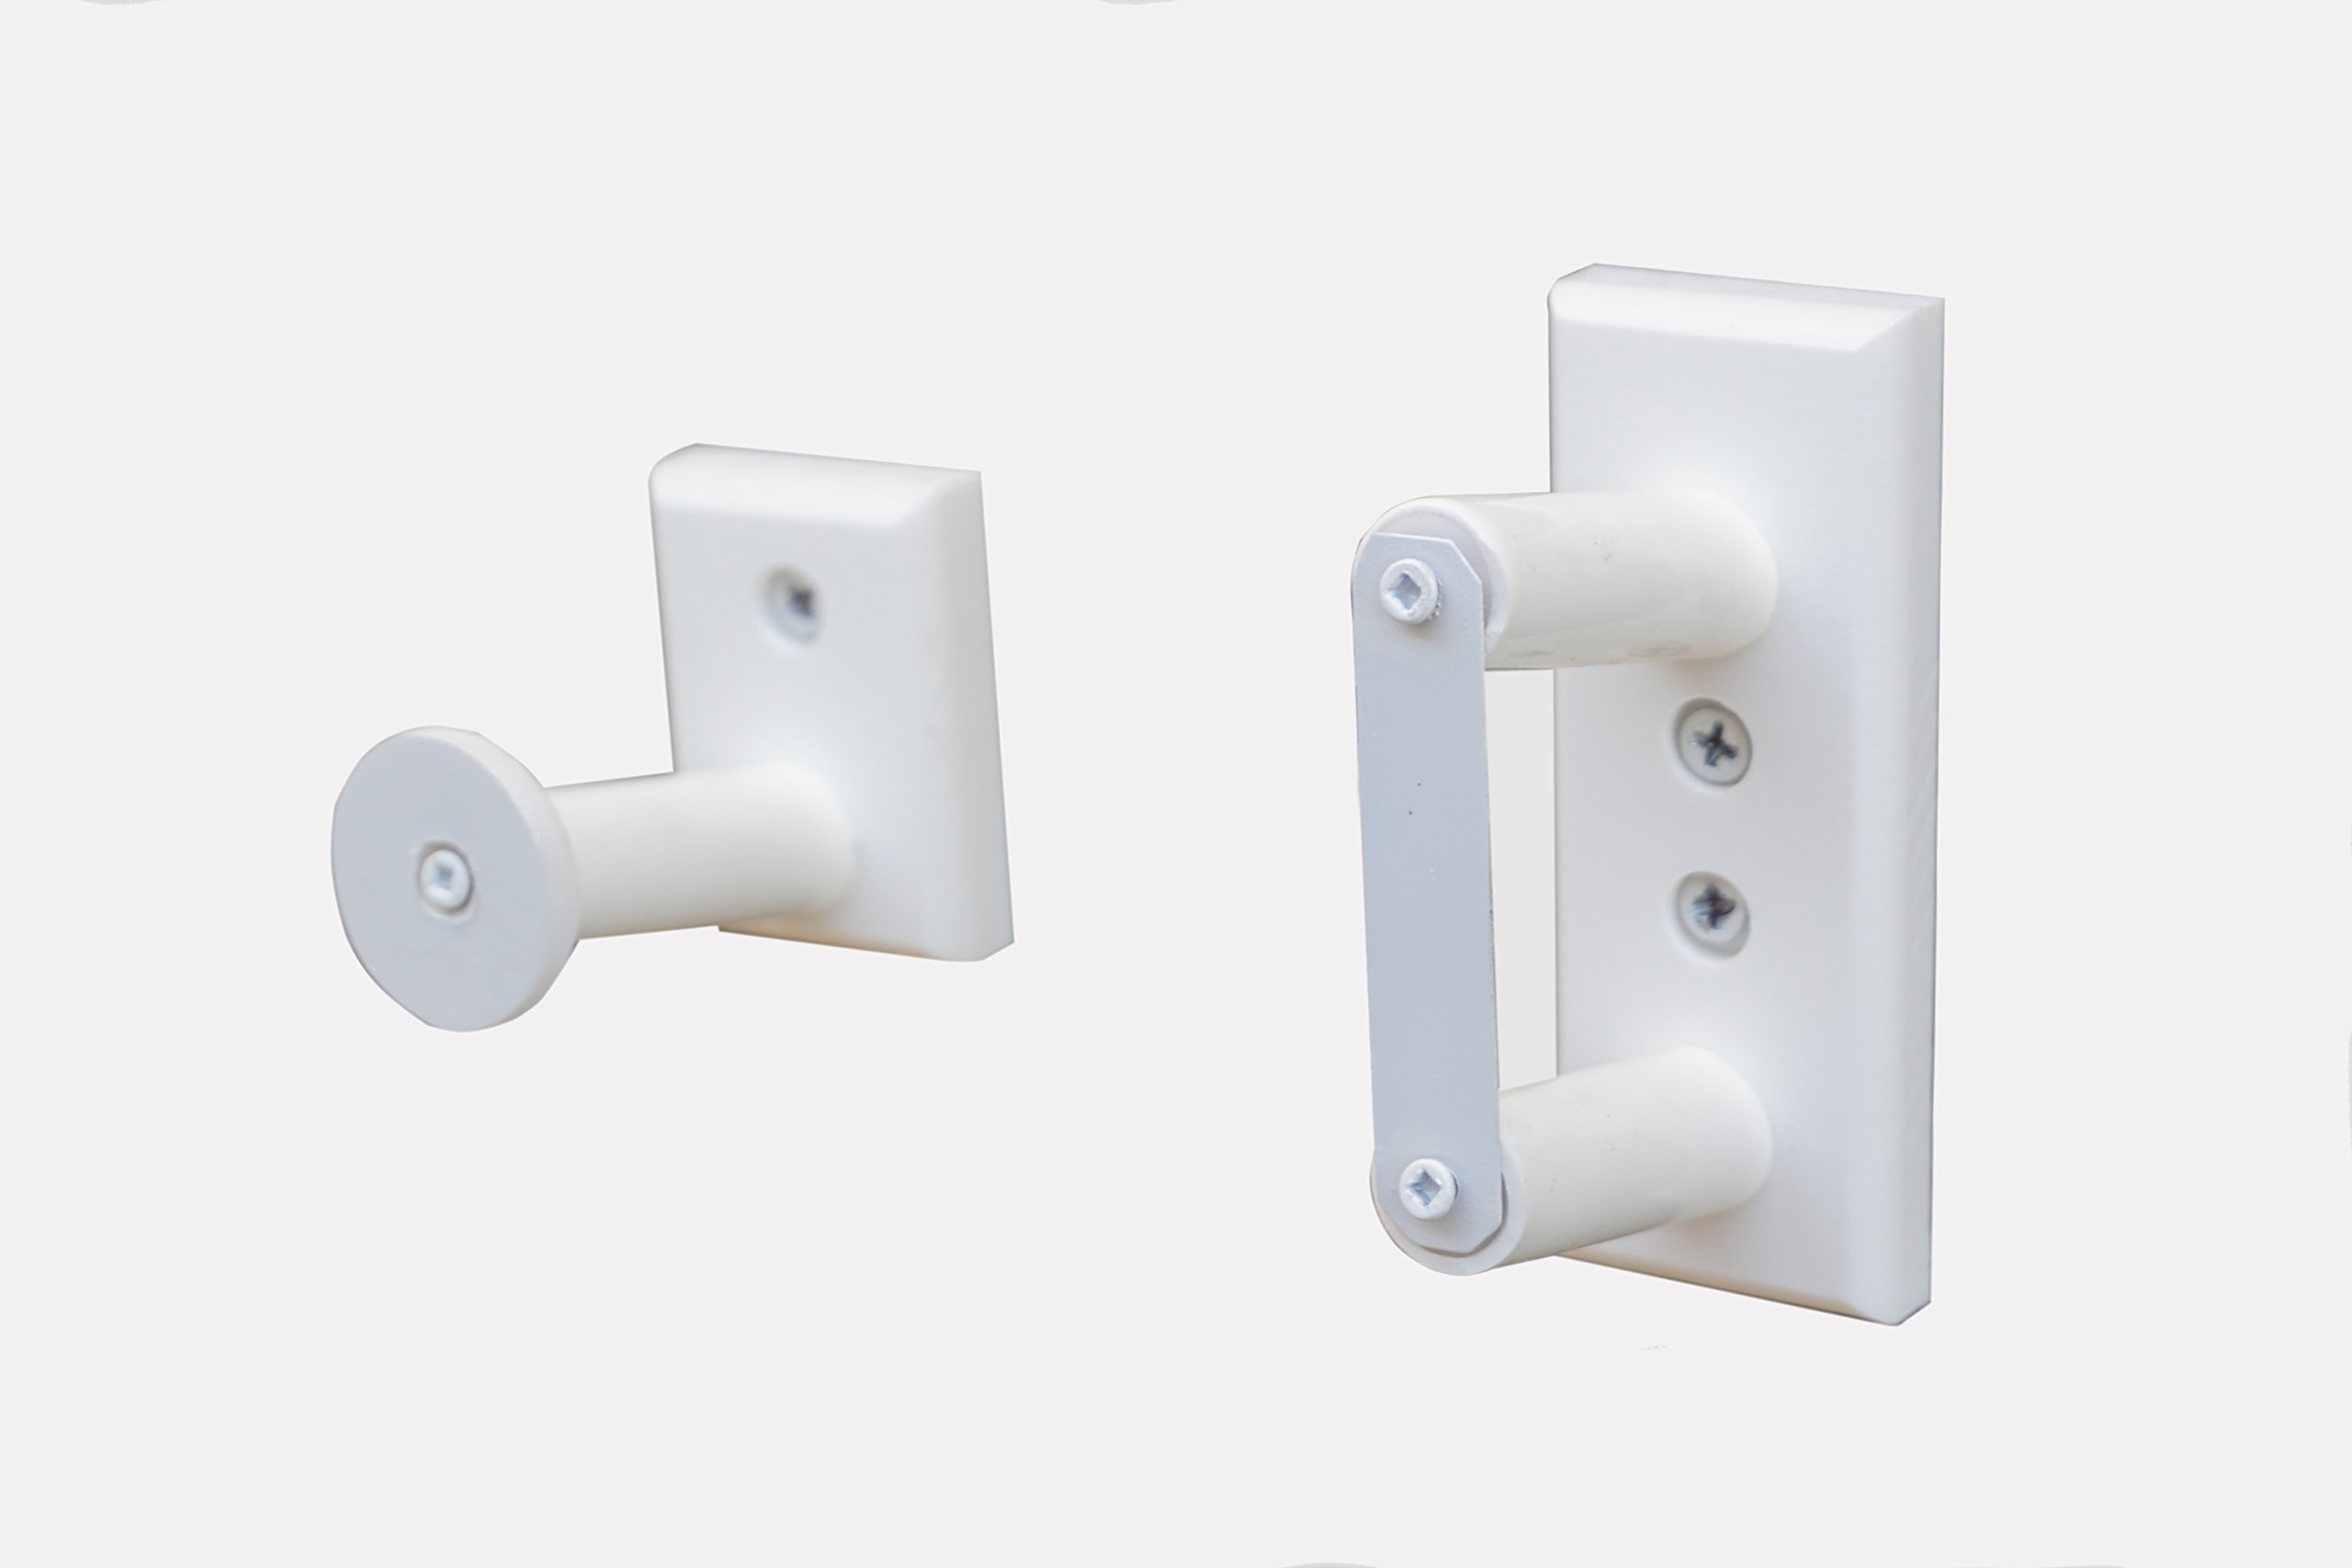 Standard Horizontal Wall Mount For a .22 Rifle With A Security Bracket (Made in the USA) (White)